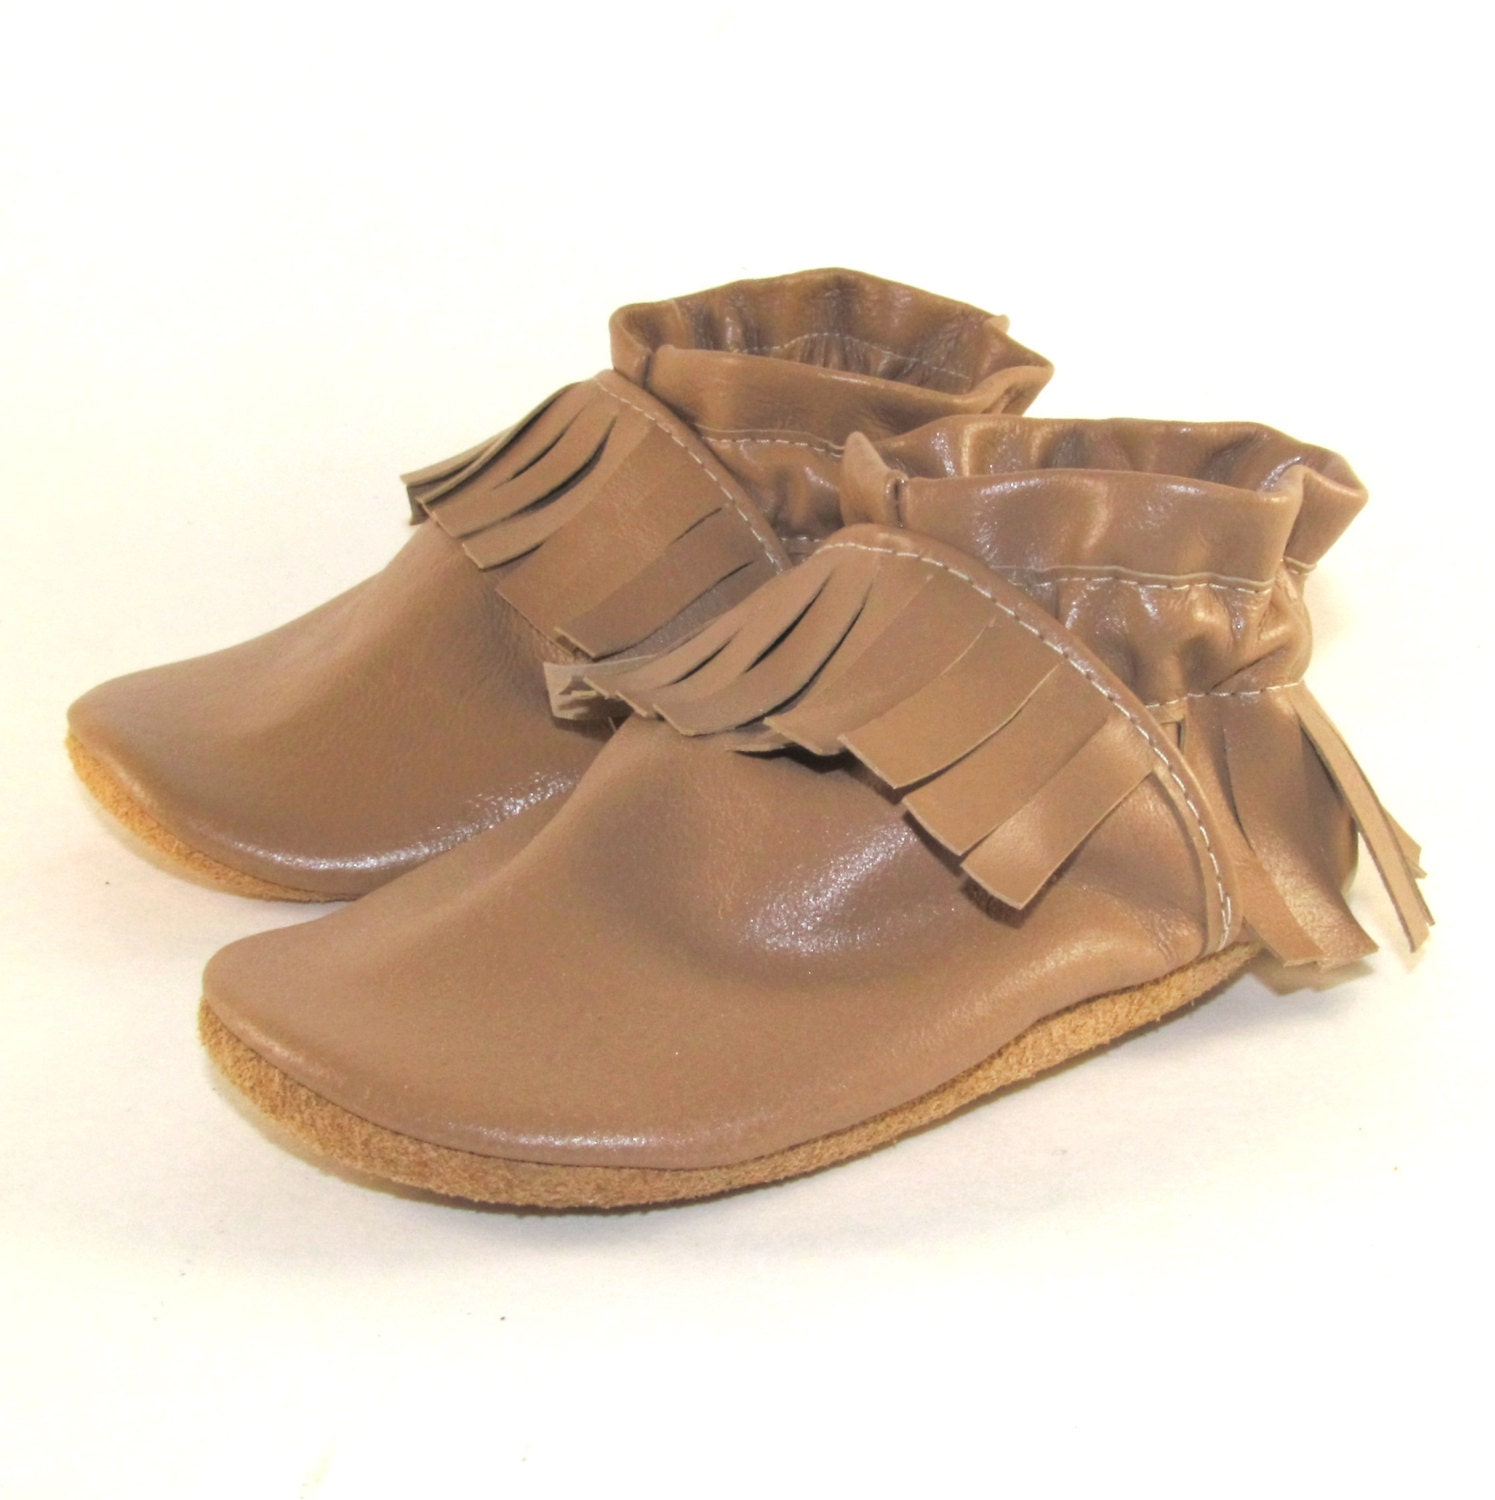 soft leather baby shoes moccasins eco friendly 12 to by